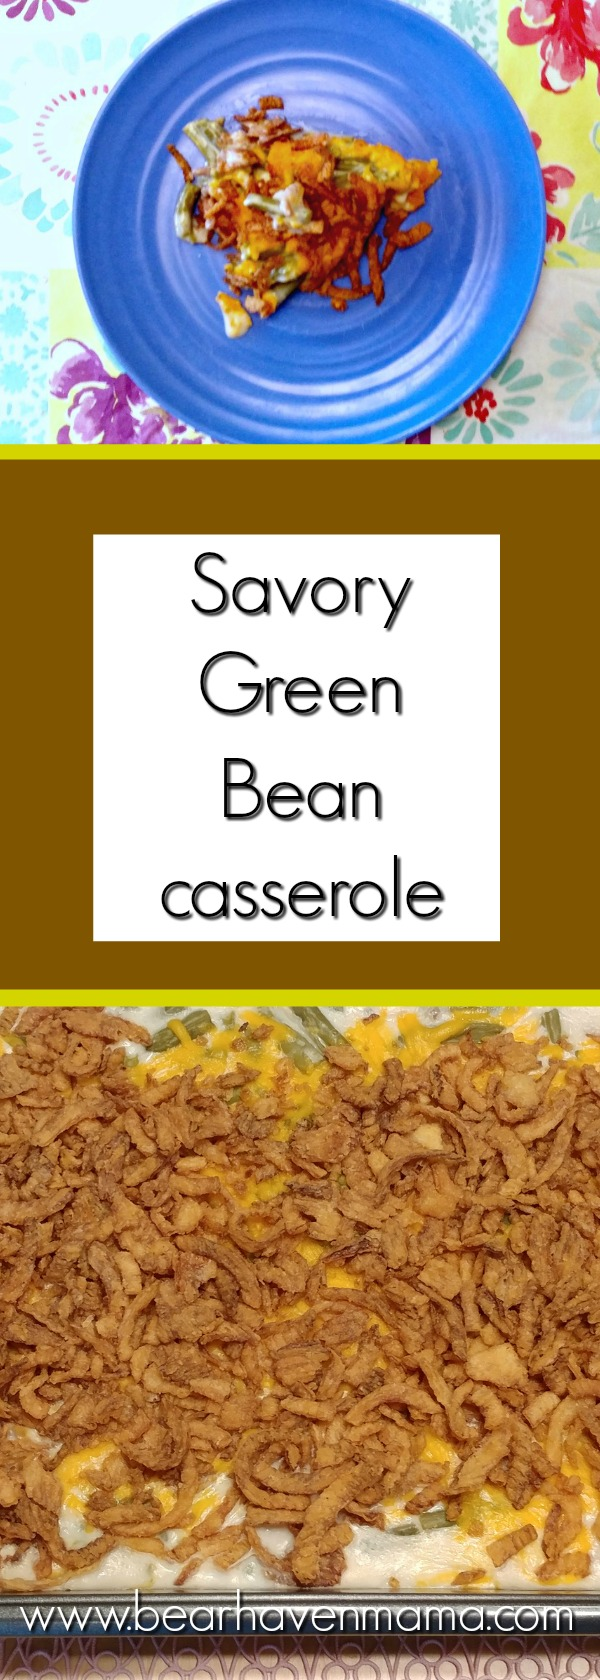 This cheesy version of green bean casserole might sound strange, but your family will love this new take on an old favorite!